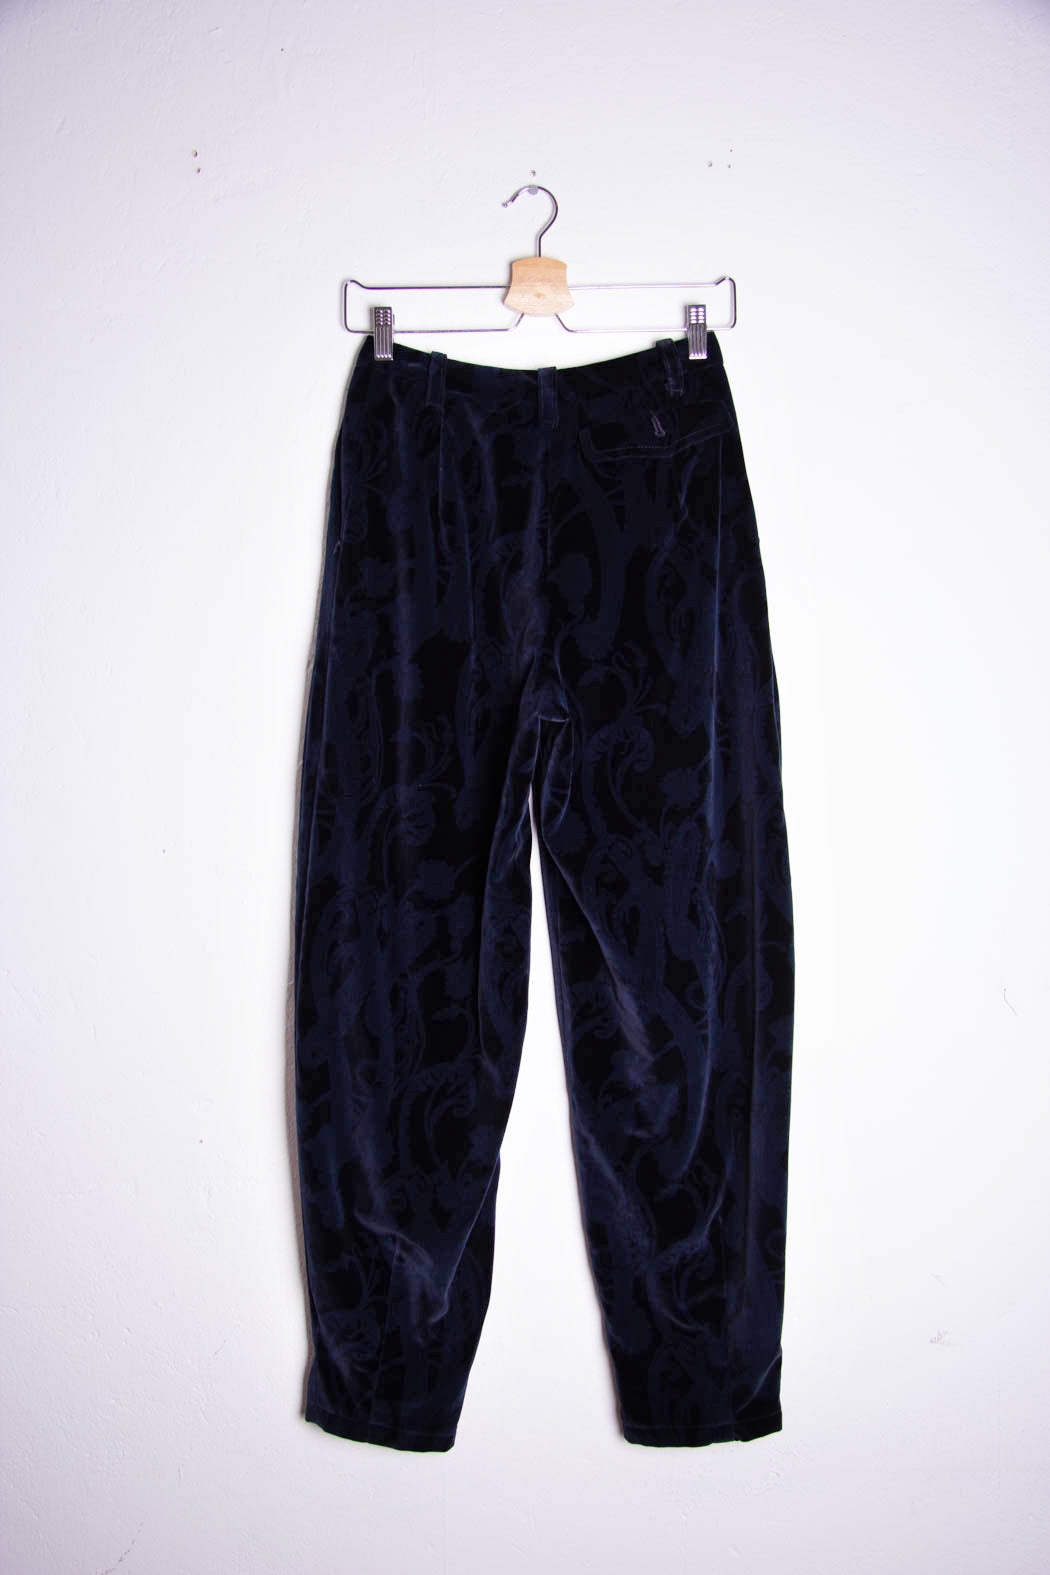 Velvet Trousers (women's)